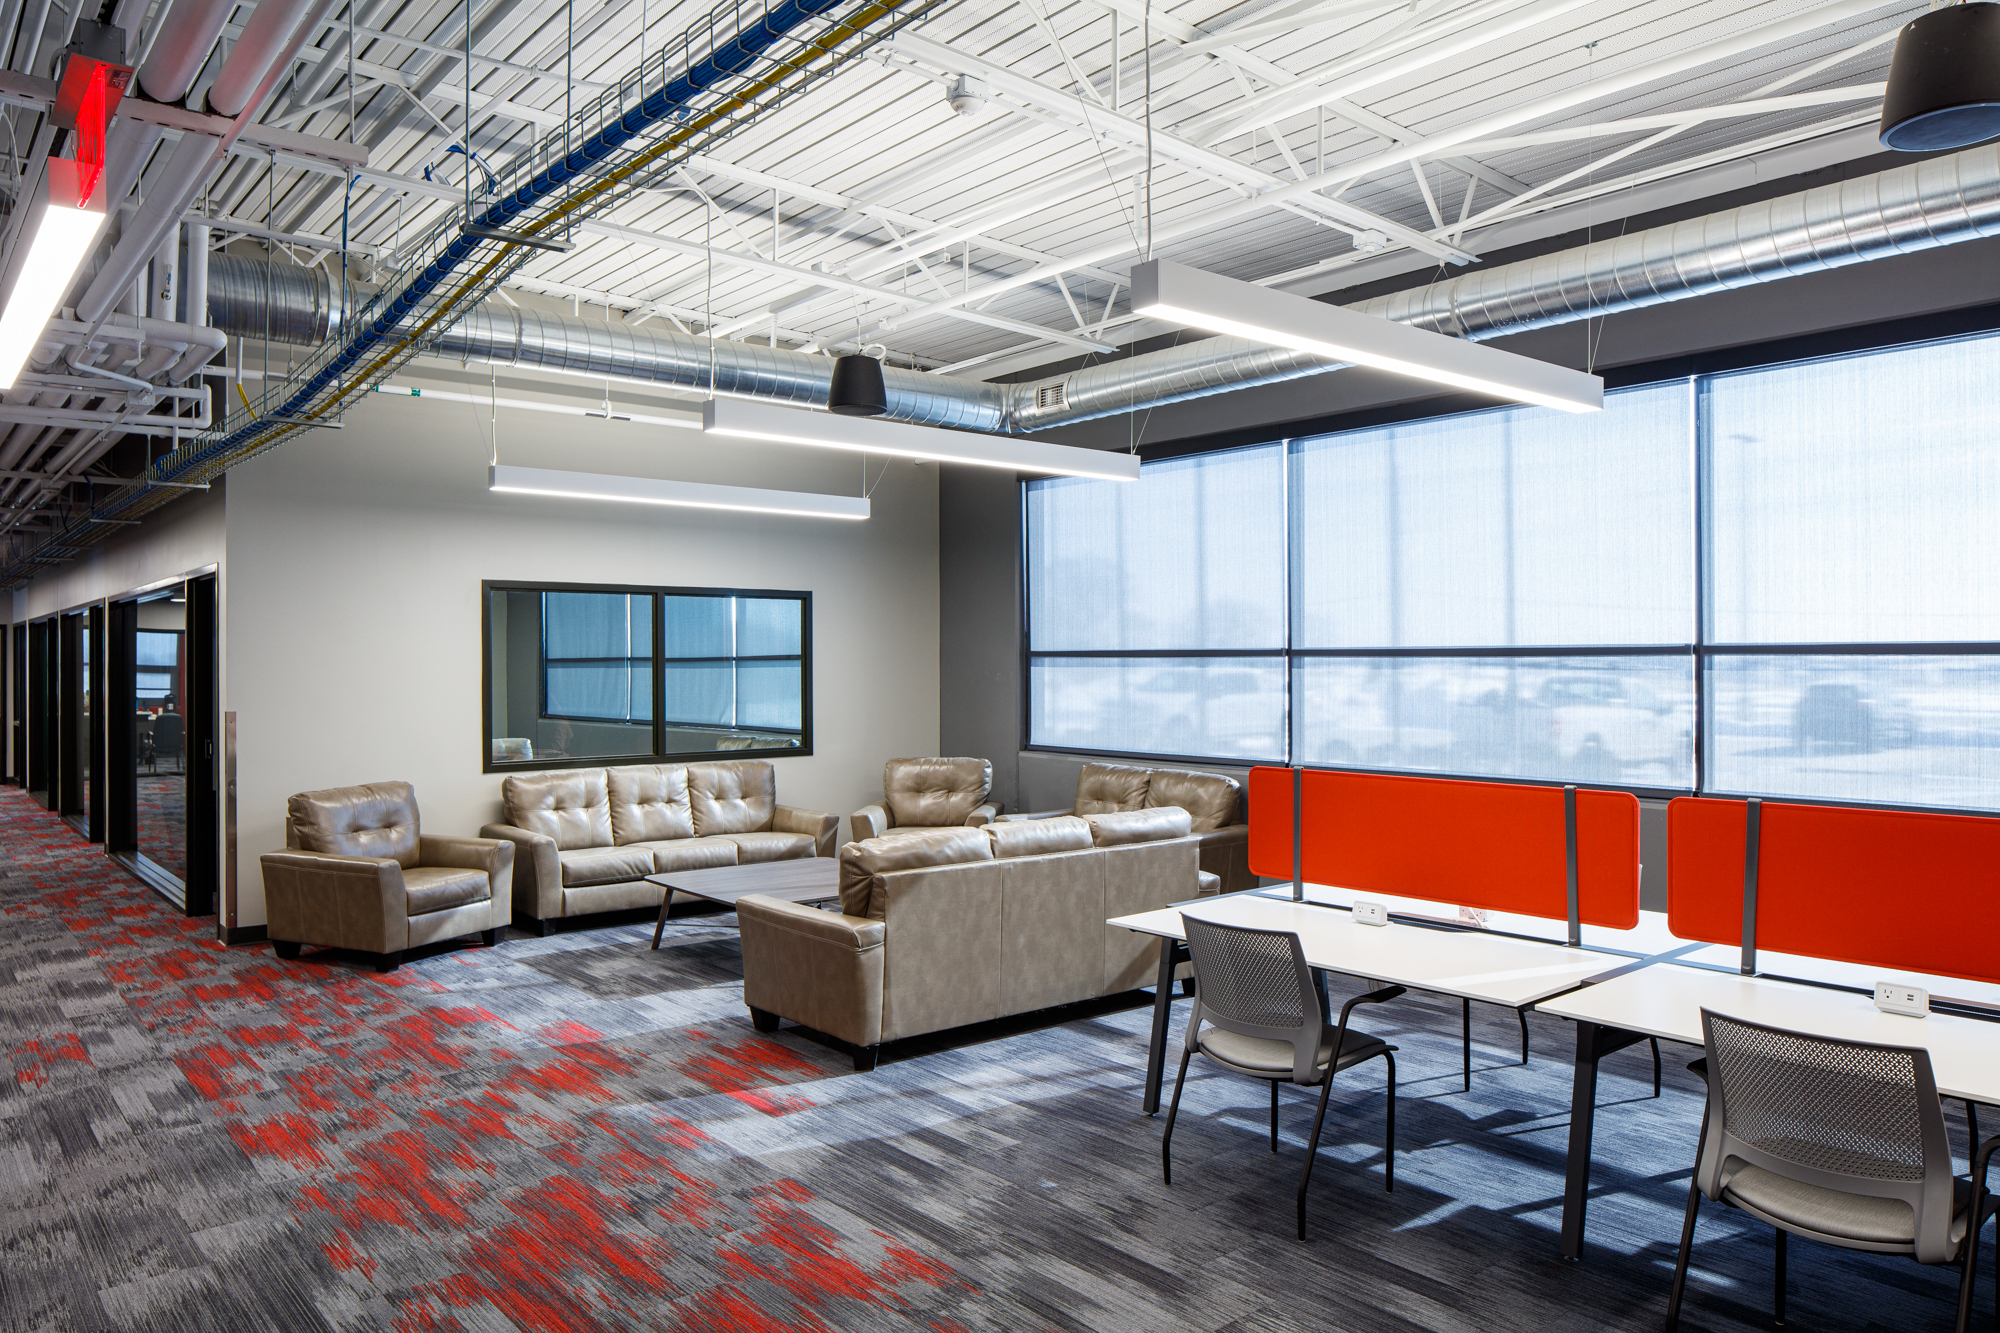 First floor grey and red carpeting showcasing beige couches and open desk workspaces divided by adjustable red walls with large windows facing the front parking lot